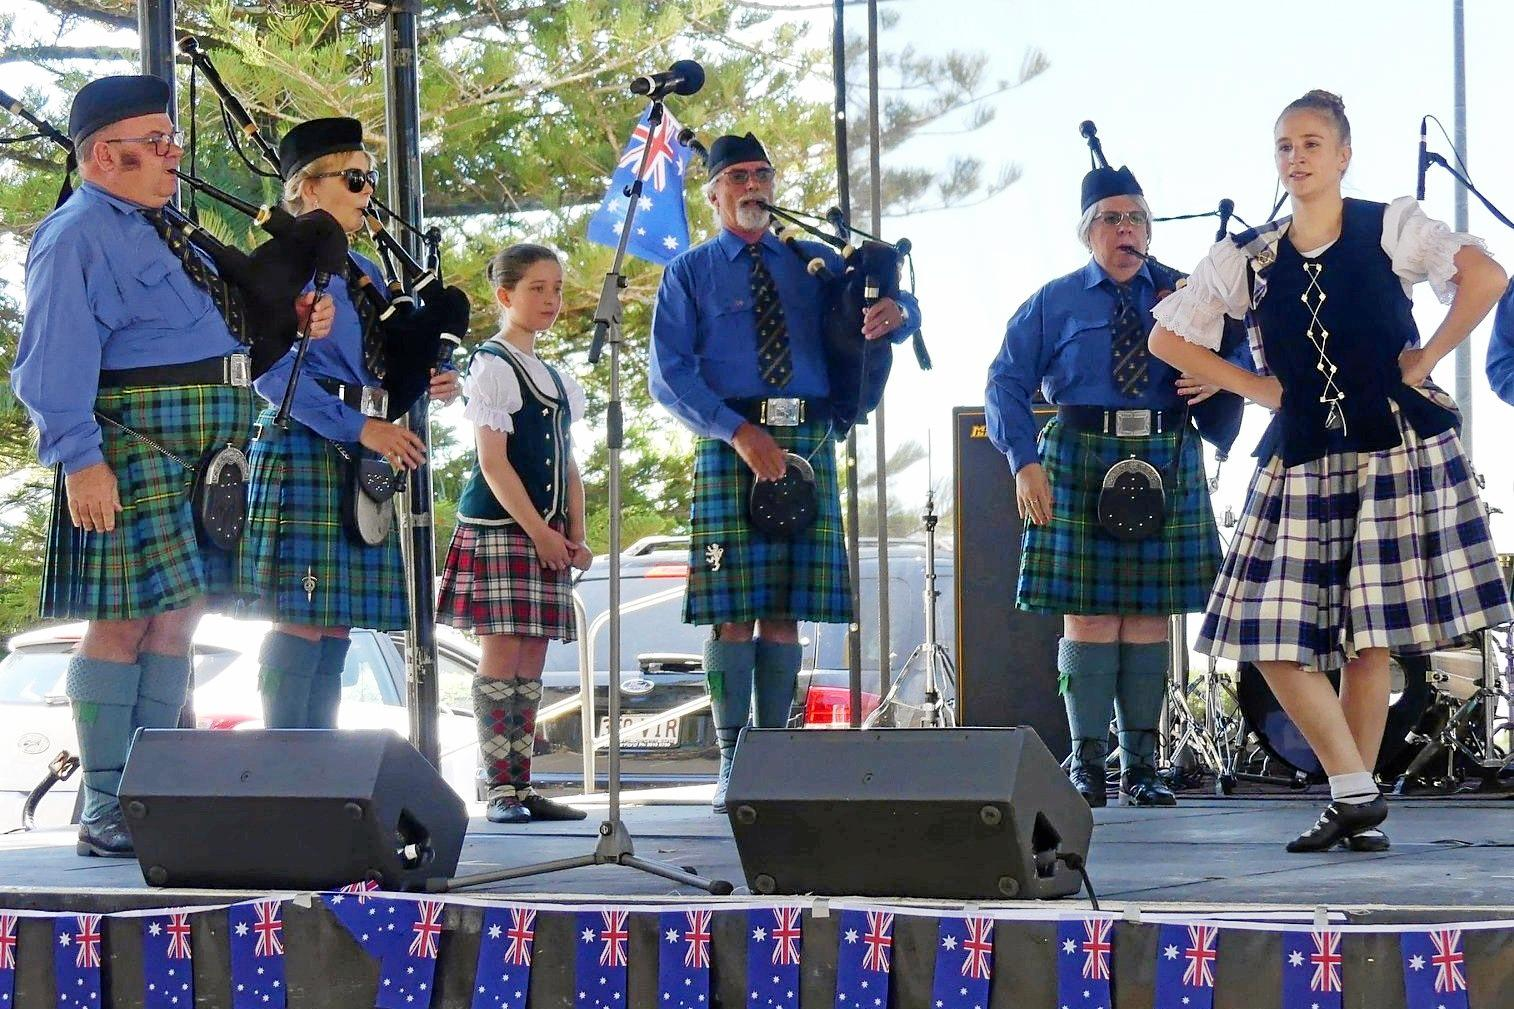 KEEPING UP TRADITIONS: The Toowoomba Caledonian Society and Pipe Band participates in a number of community events, including Australia Day, as well as holding its own Cieldhs.